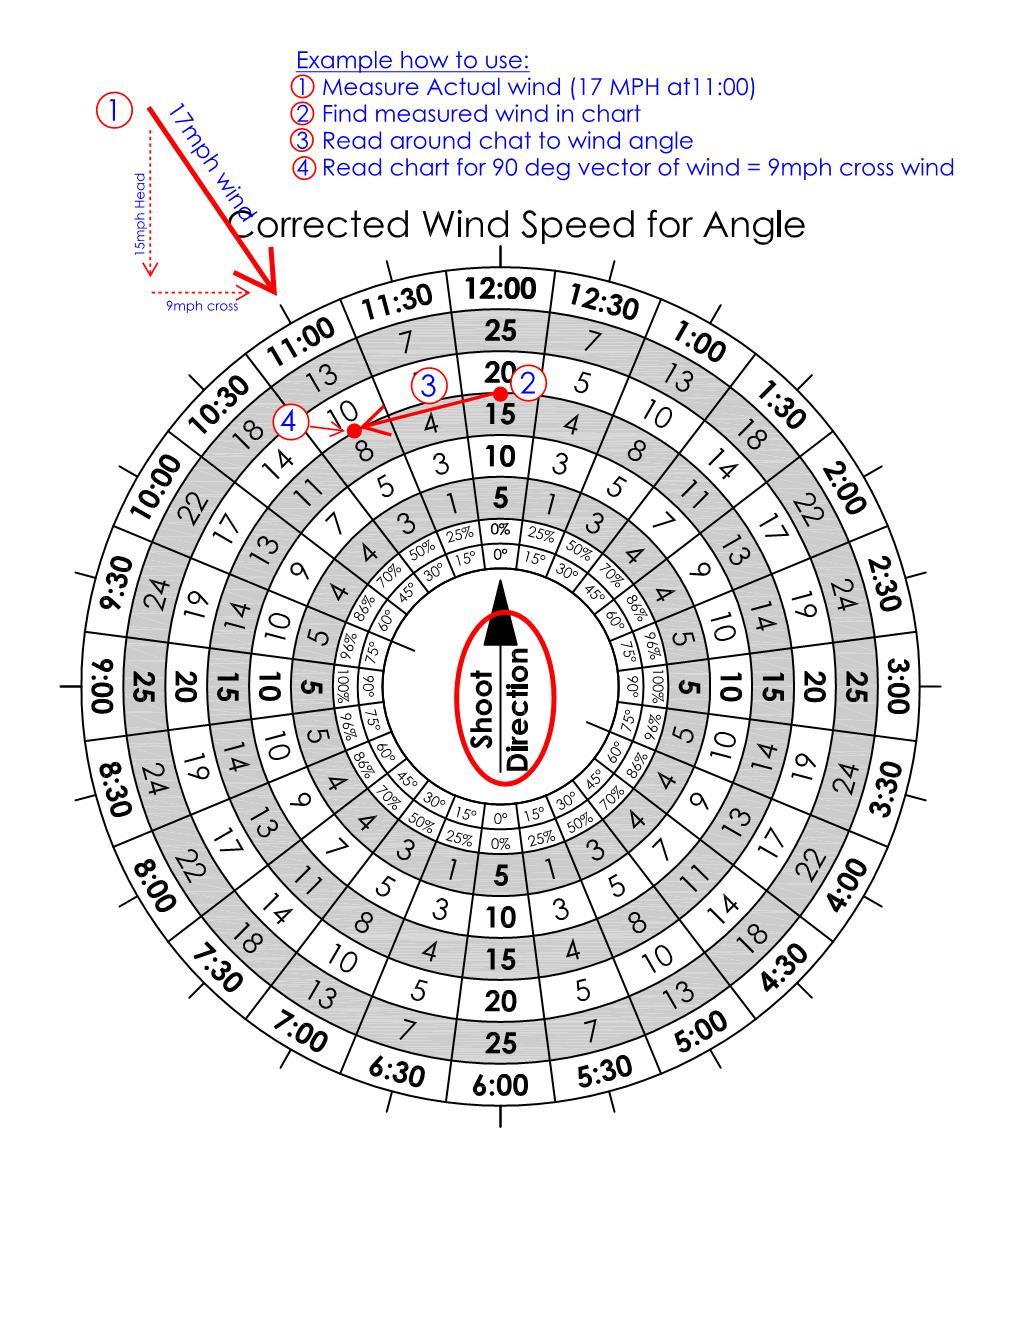 Wind Rose - Corrected wind speed for Angle HOW TOO.jpg